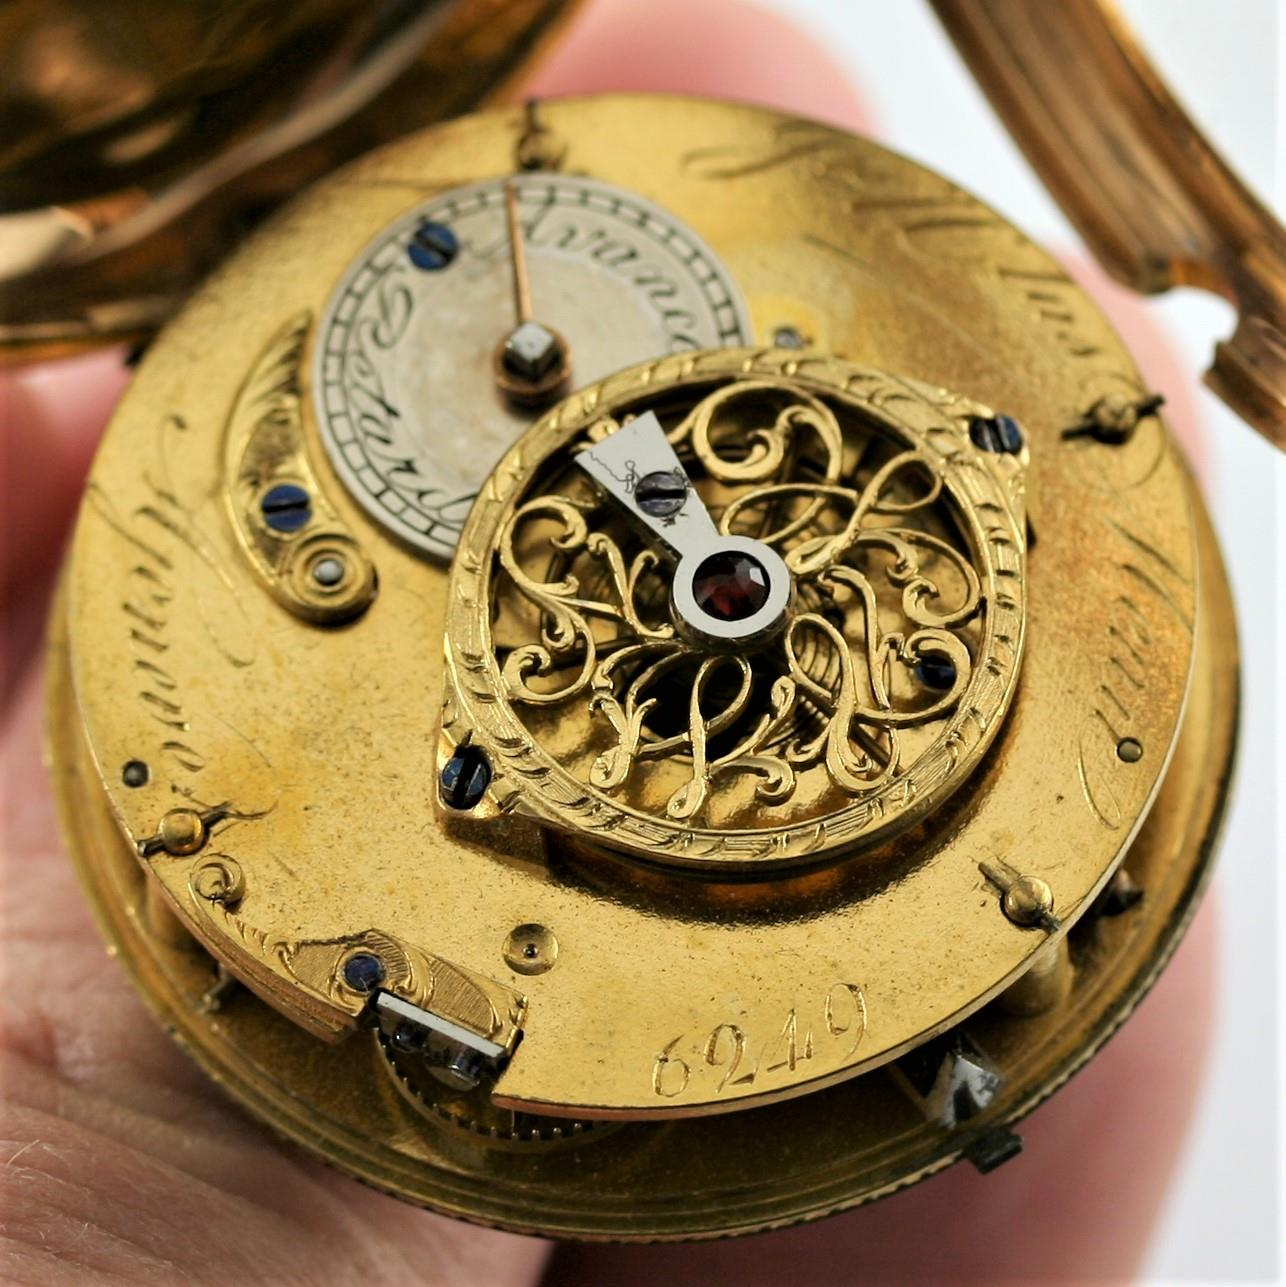 A SWISS LATE 18TH CENTURY PAIR CASED POCKET WATCH BY JEAN NICOLAS MENU the signed white enamel - Image 6 of 10